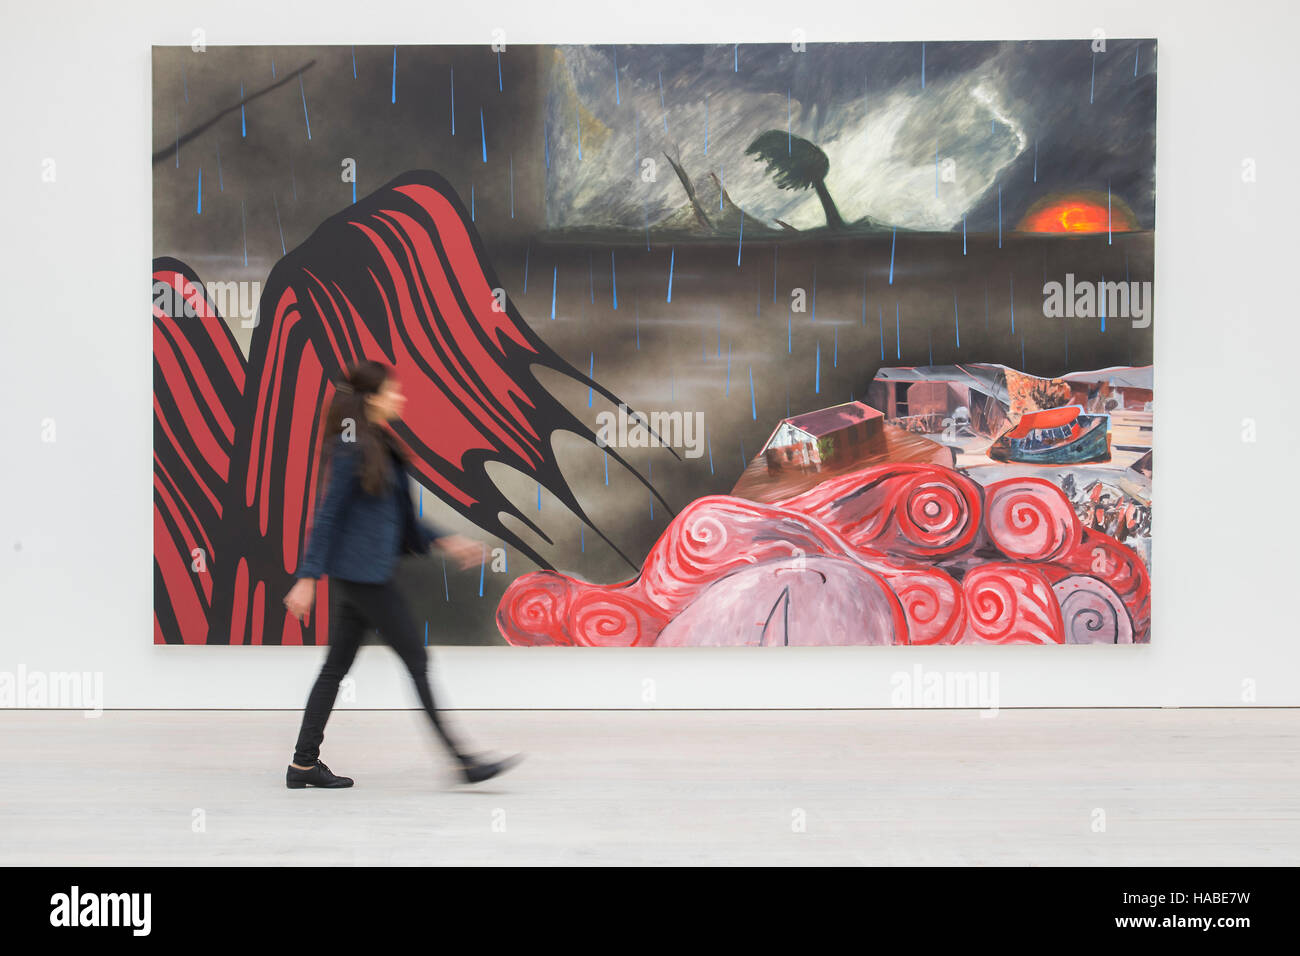 Dexter Dalwood Stockfotos & Dexter Dalwood Bilder - Alamy